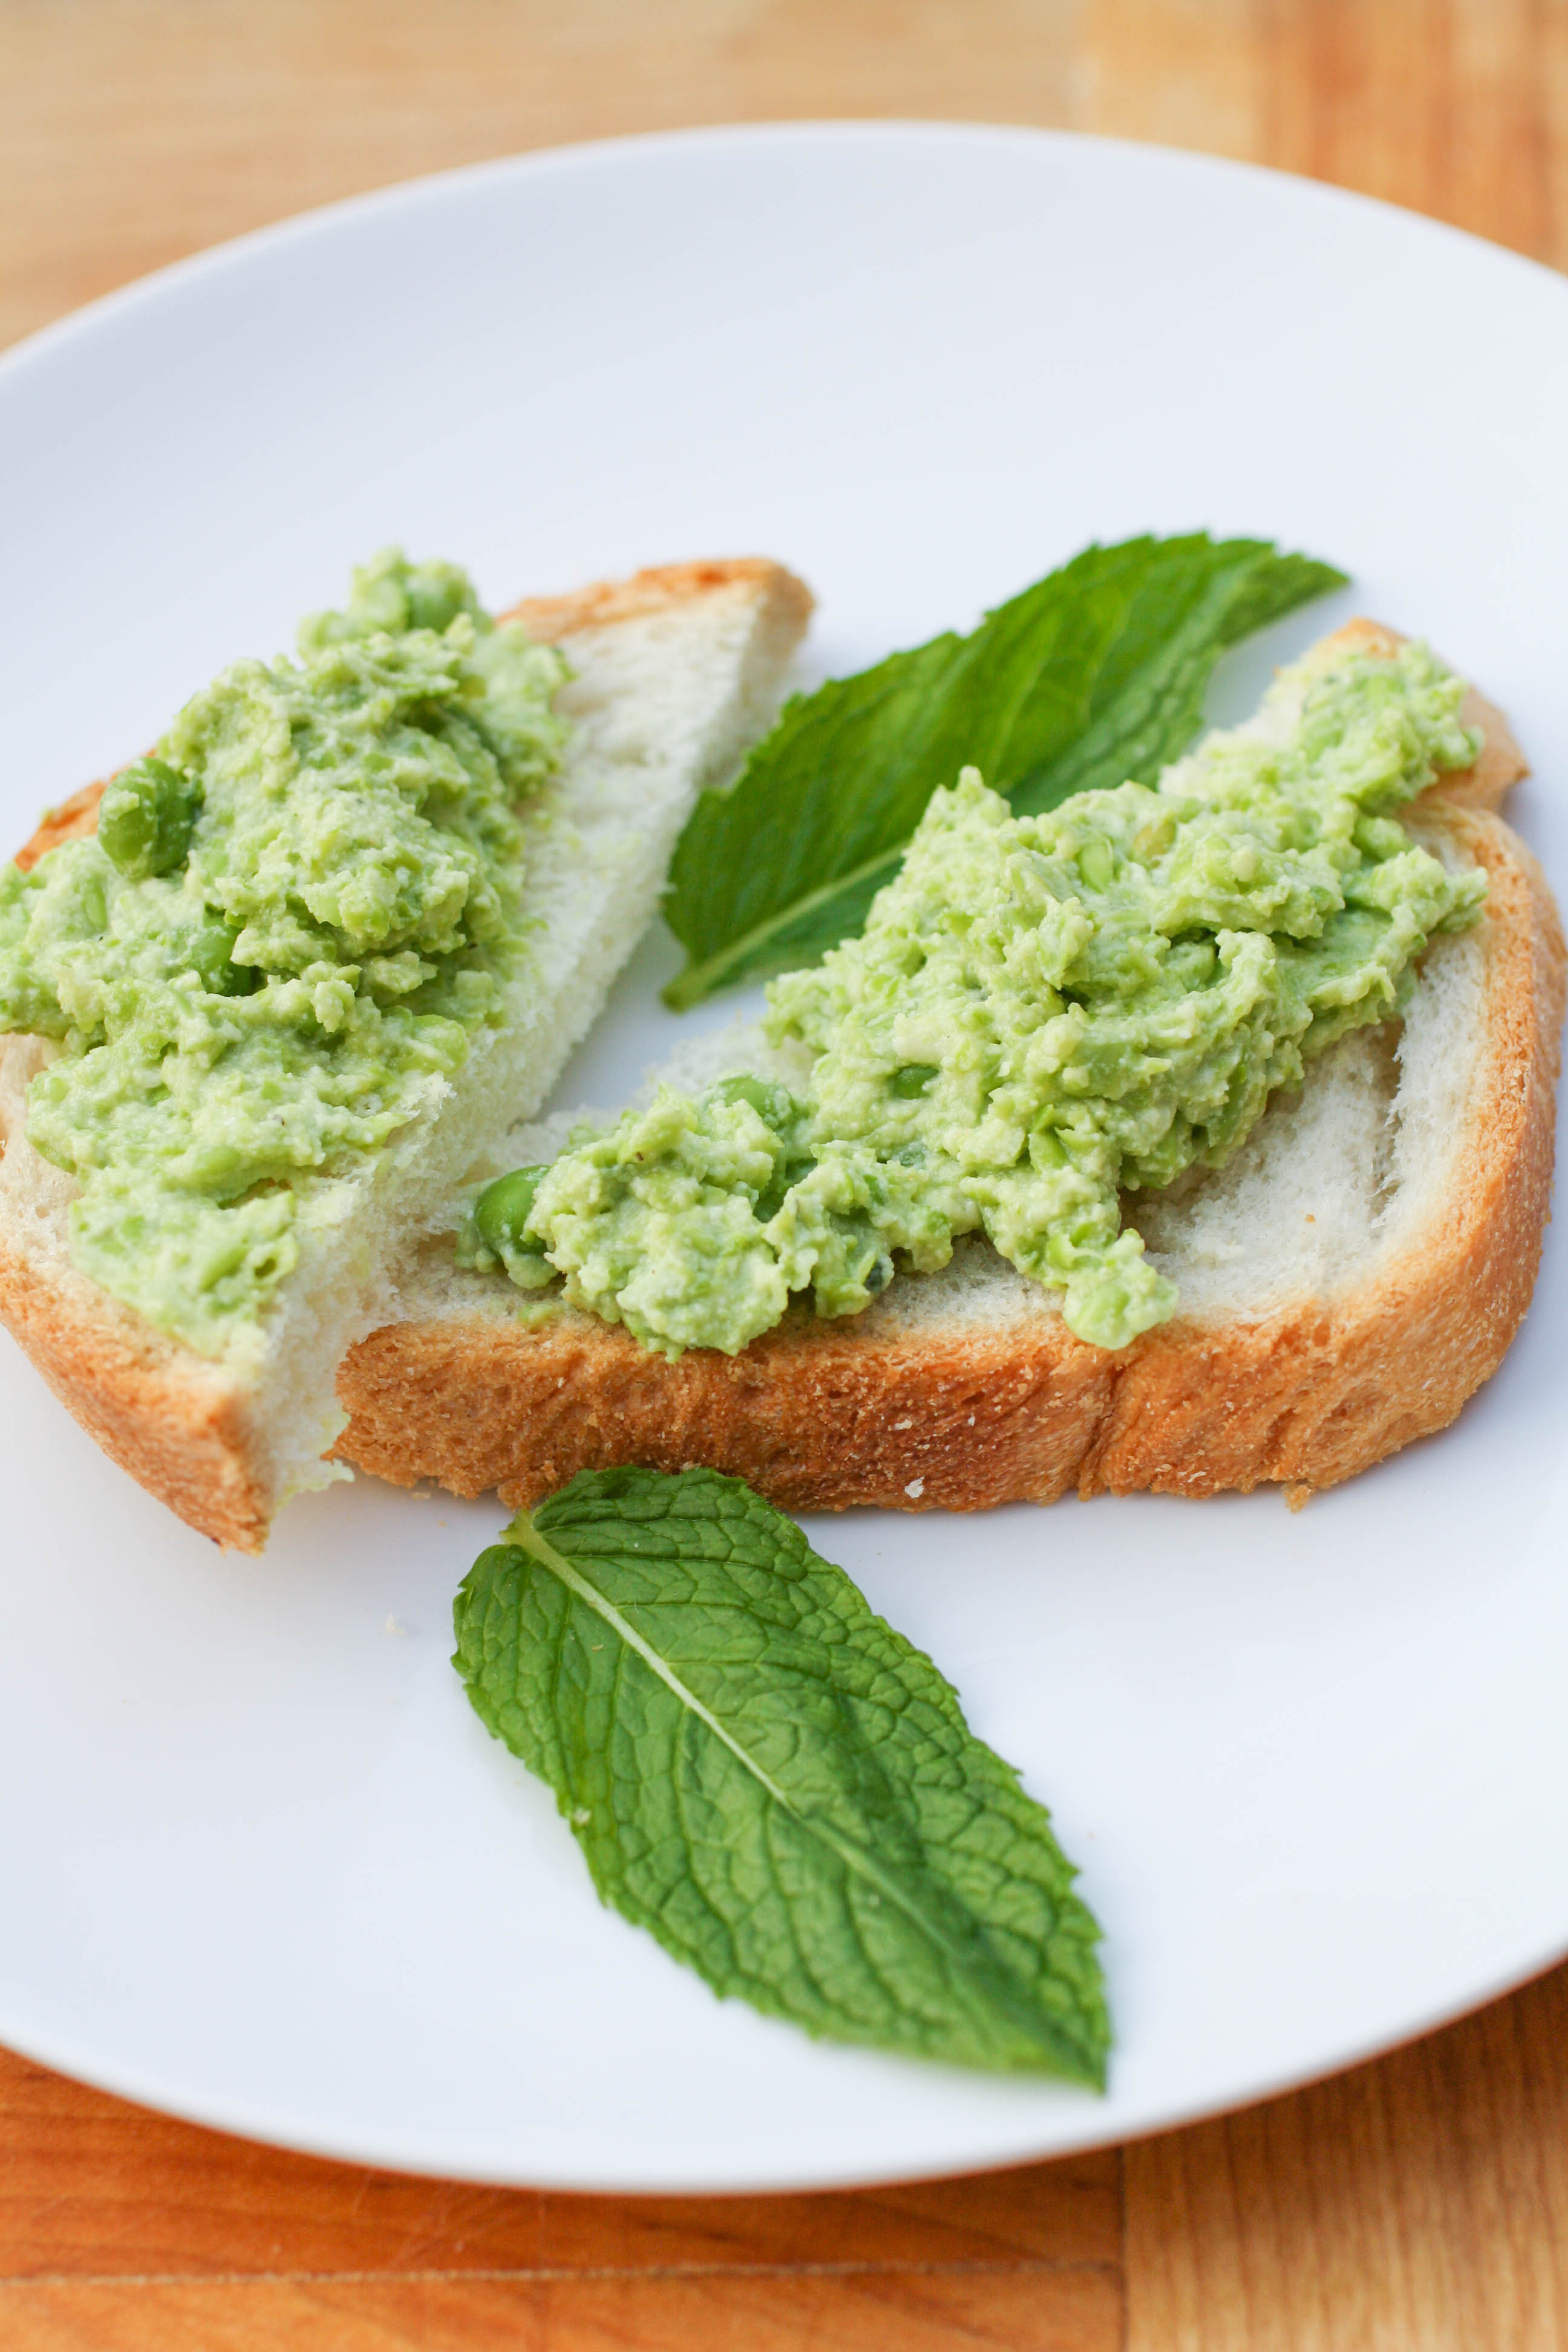 Pea and Ricotta Spread makes the perfect spring appetizer. Pea and Ricotta Spread is a nice appetizer to serve at Easter, or any get together during the season.